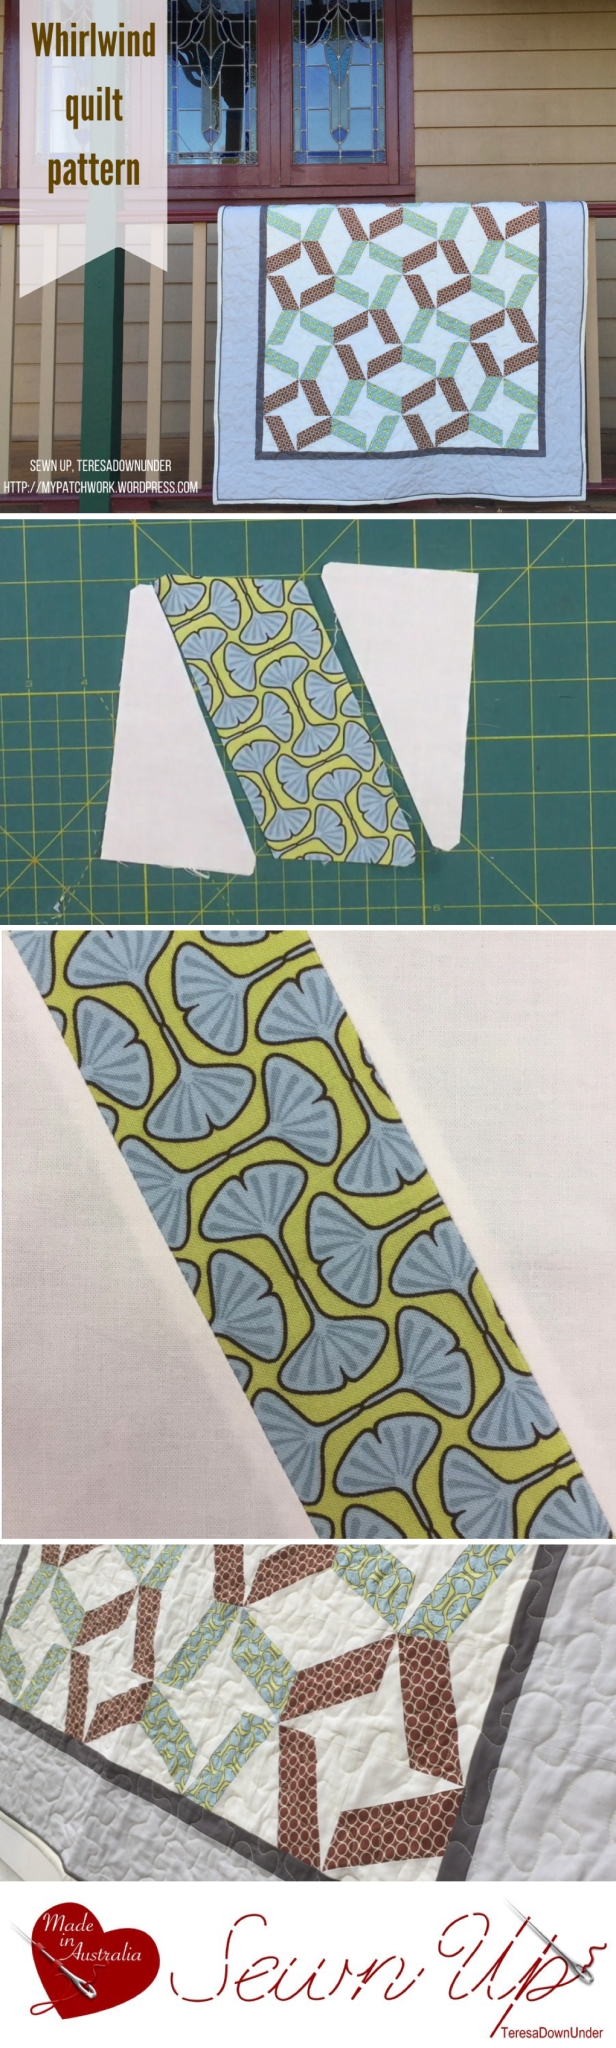 Quilt Pattern: Whirlwind quilt - traditional piecing. Quick and easy quilt